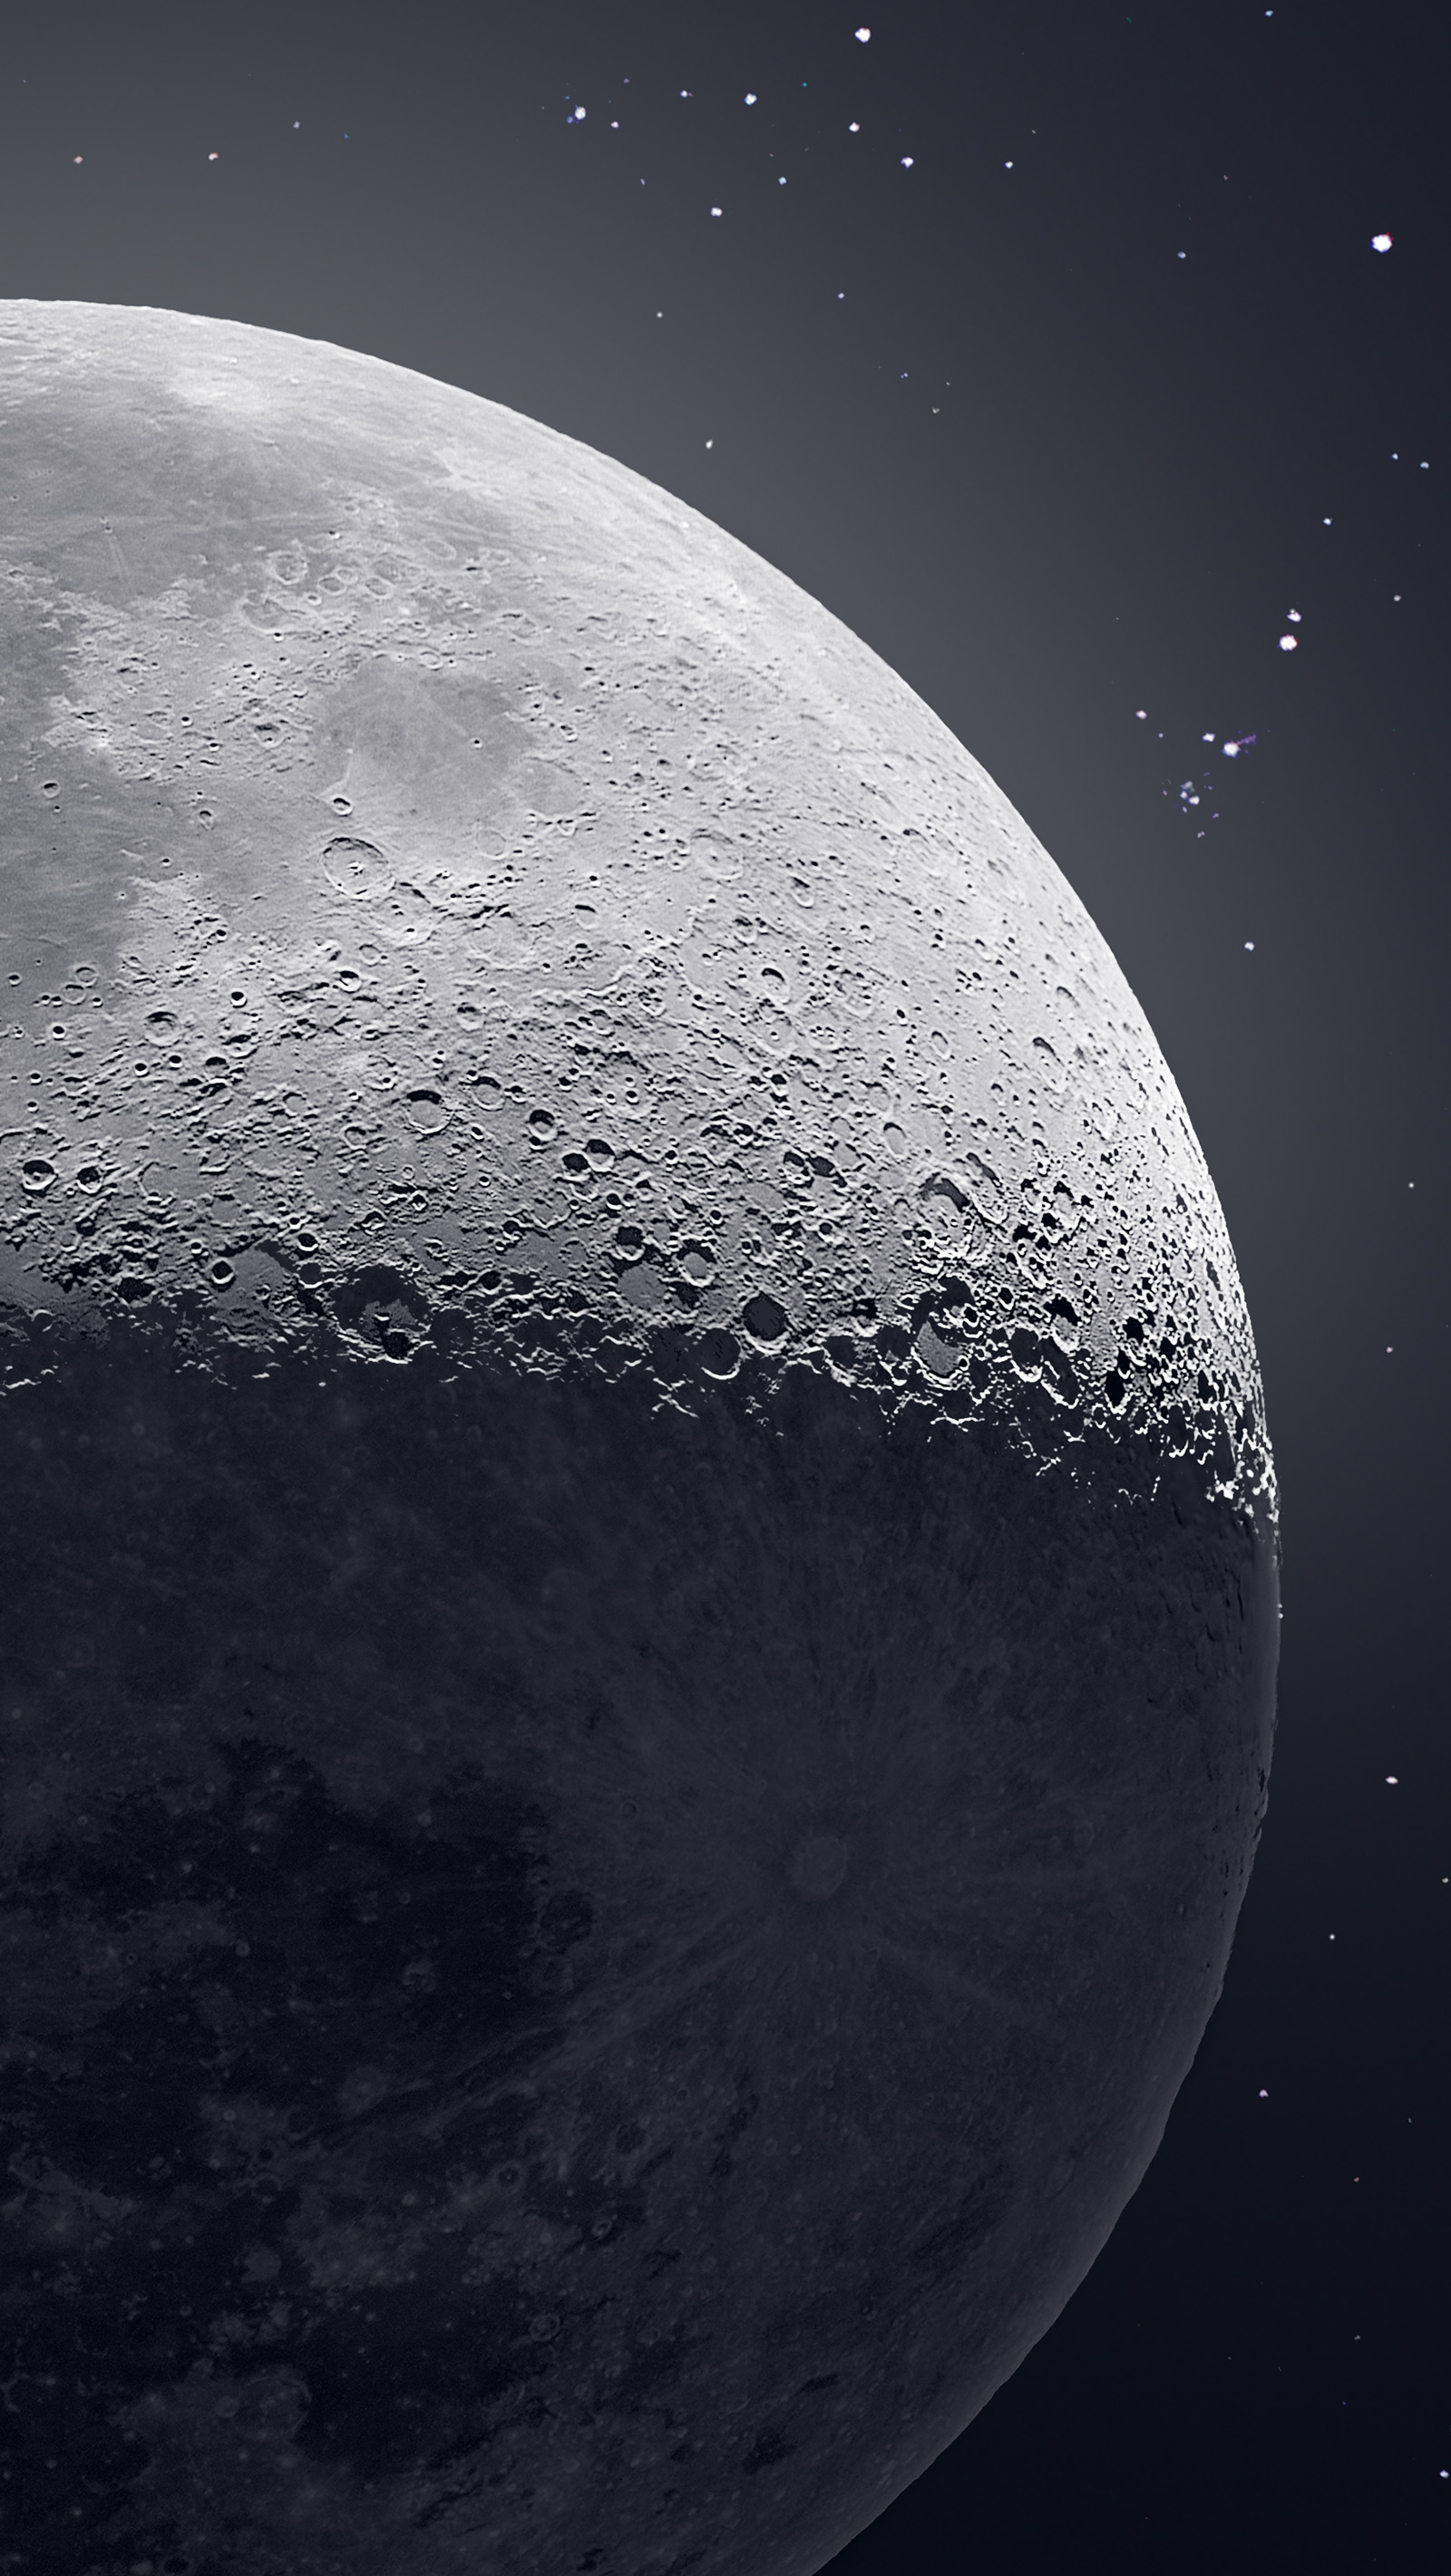 50 000 Photographs Combine To Form A Detailed Image Of The Moon And Stars Colossal